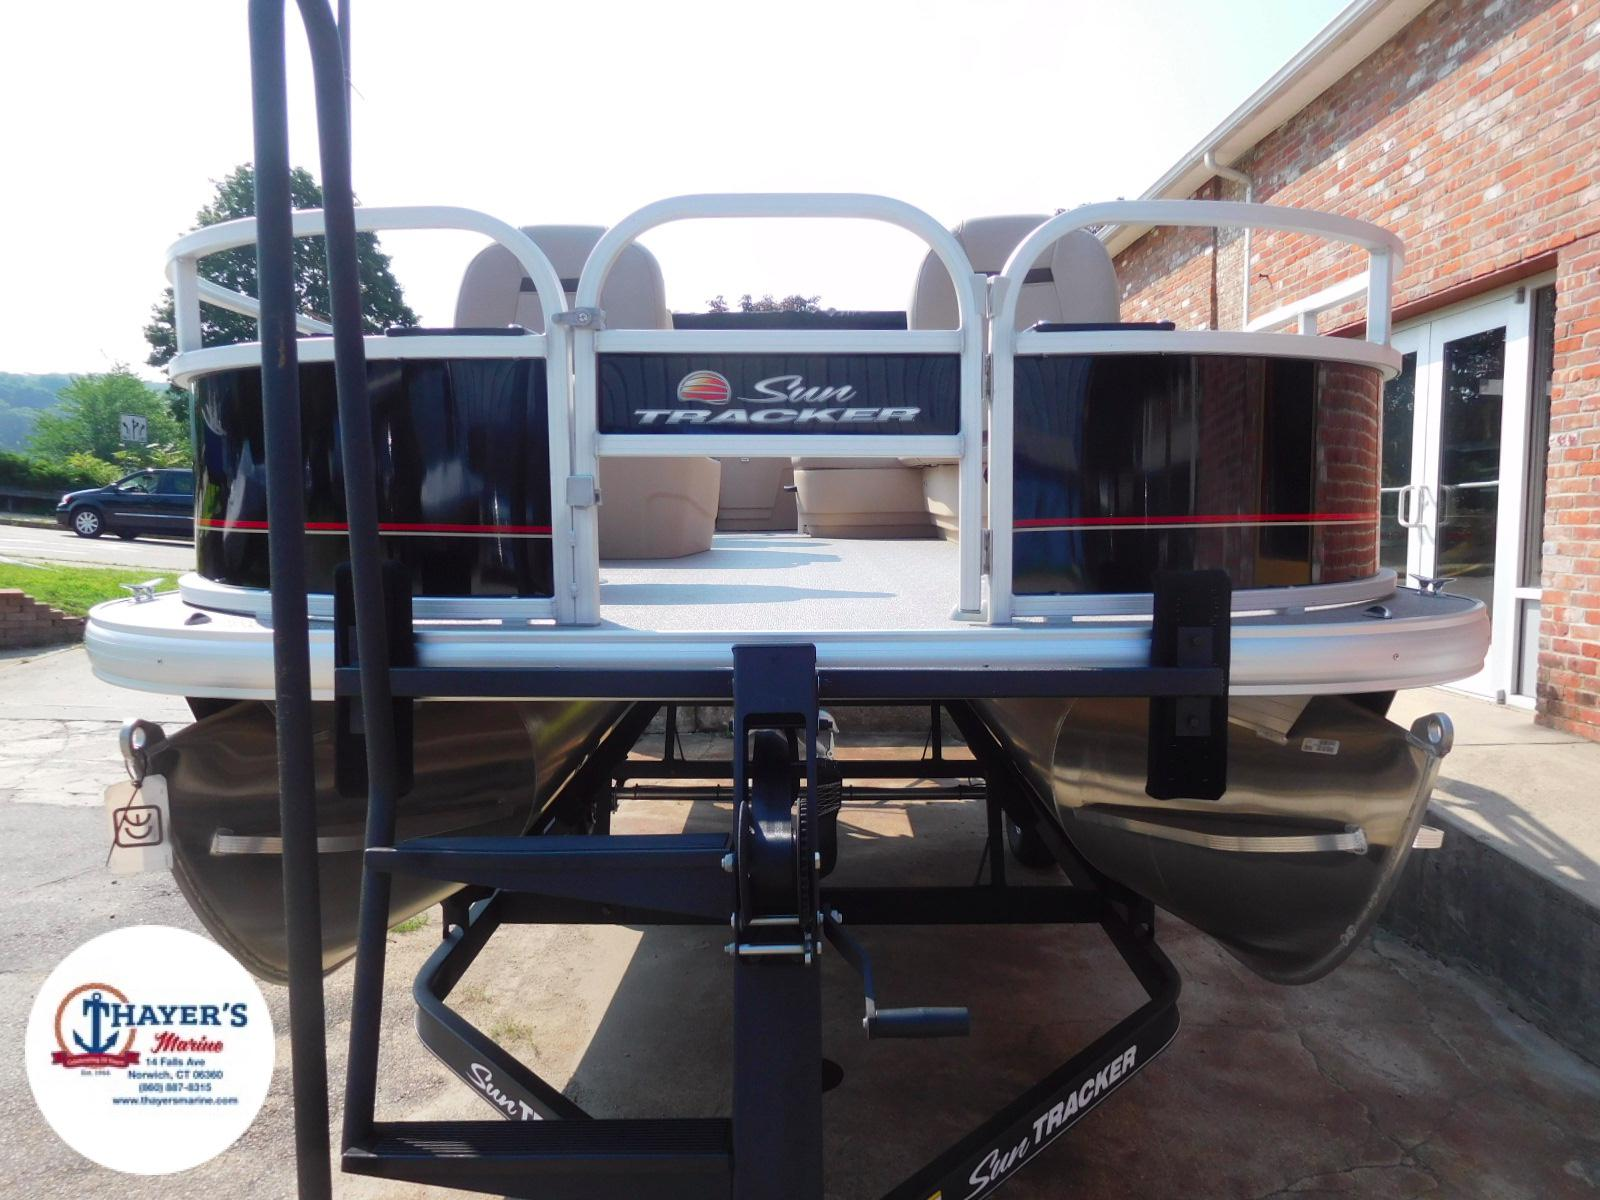 2018 Sun Tracker boat for sale, model of the boat is Bass Buggy 18 DLX & Image # 10 of 35